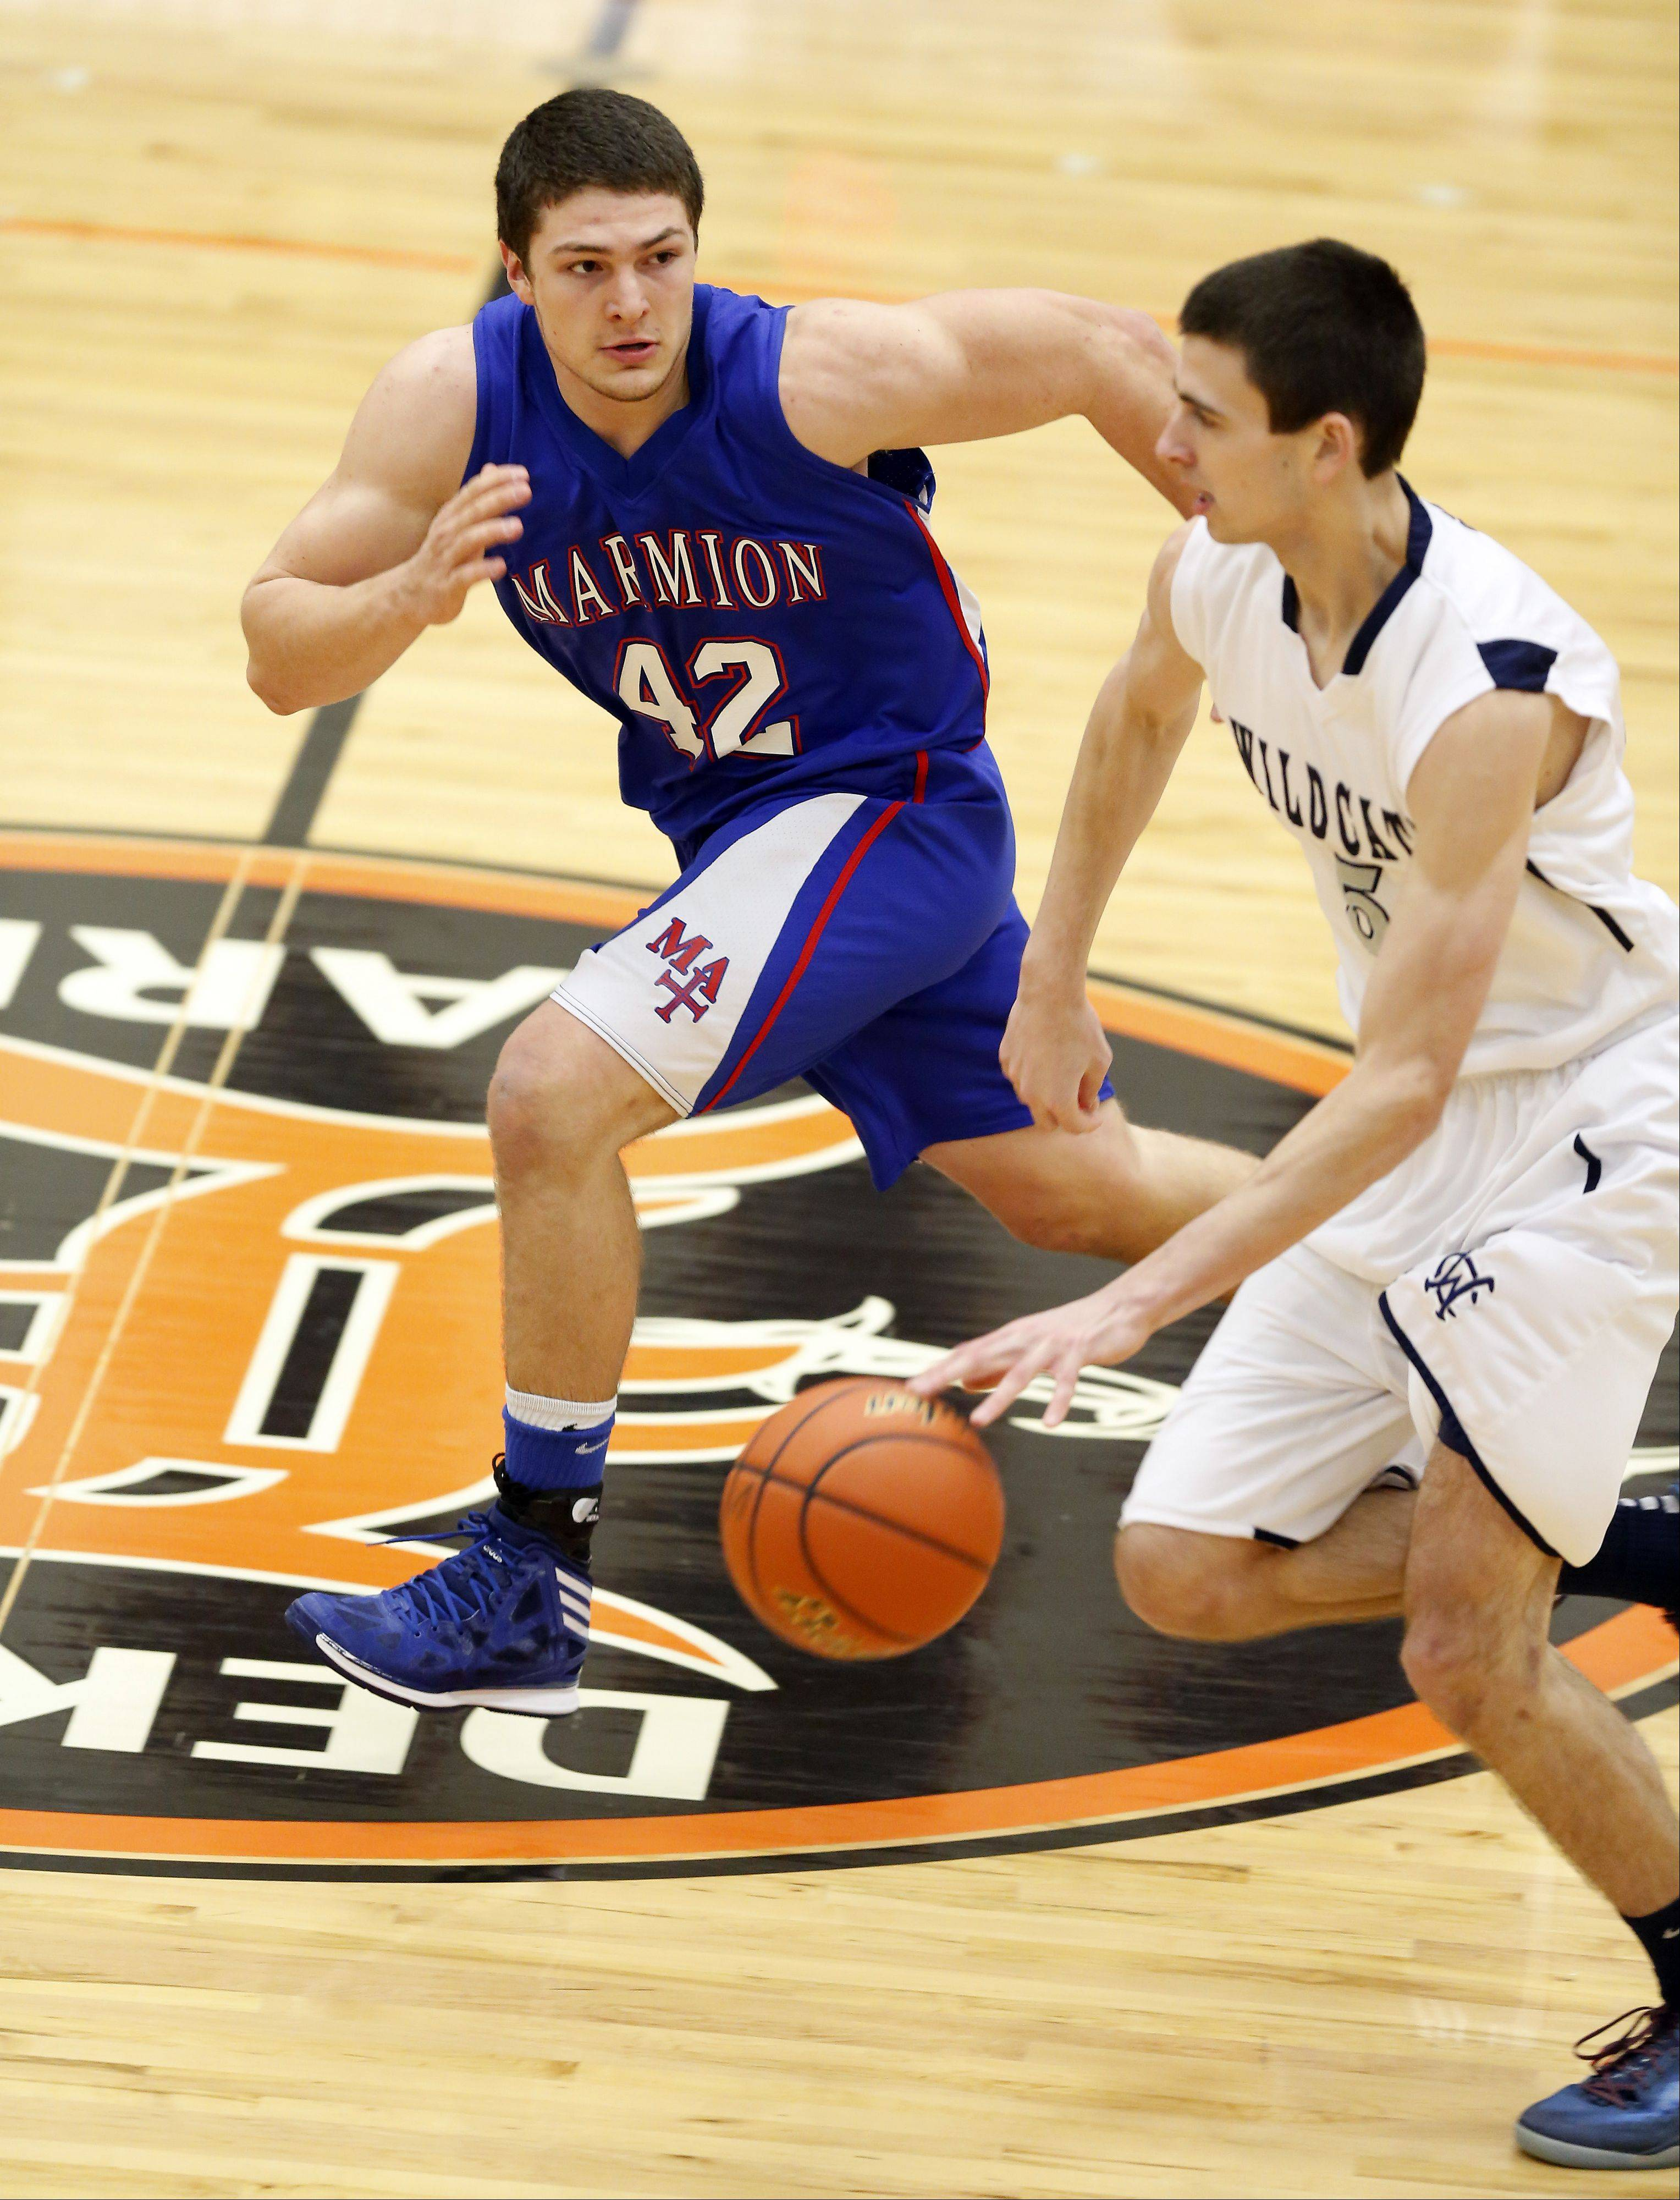 Marmion's Jordan Glasgow, 42, puts some pressure on West Chicago's John Konchar, 5, during the third place game at the 86th Annual Chuck Dayton Holiday Basketball Tournament at Dekalb High School Friday December 27, 2013.